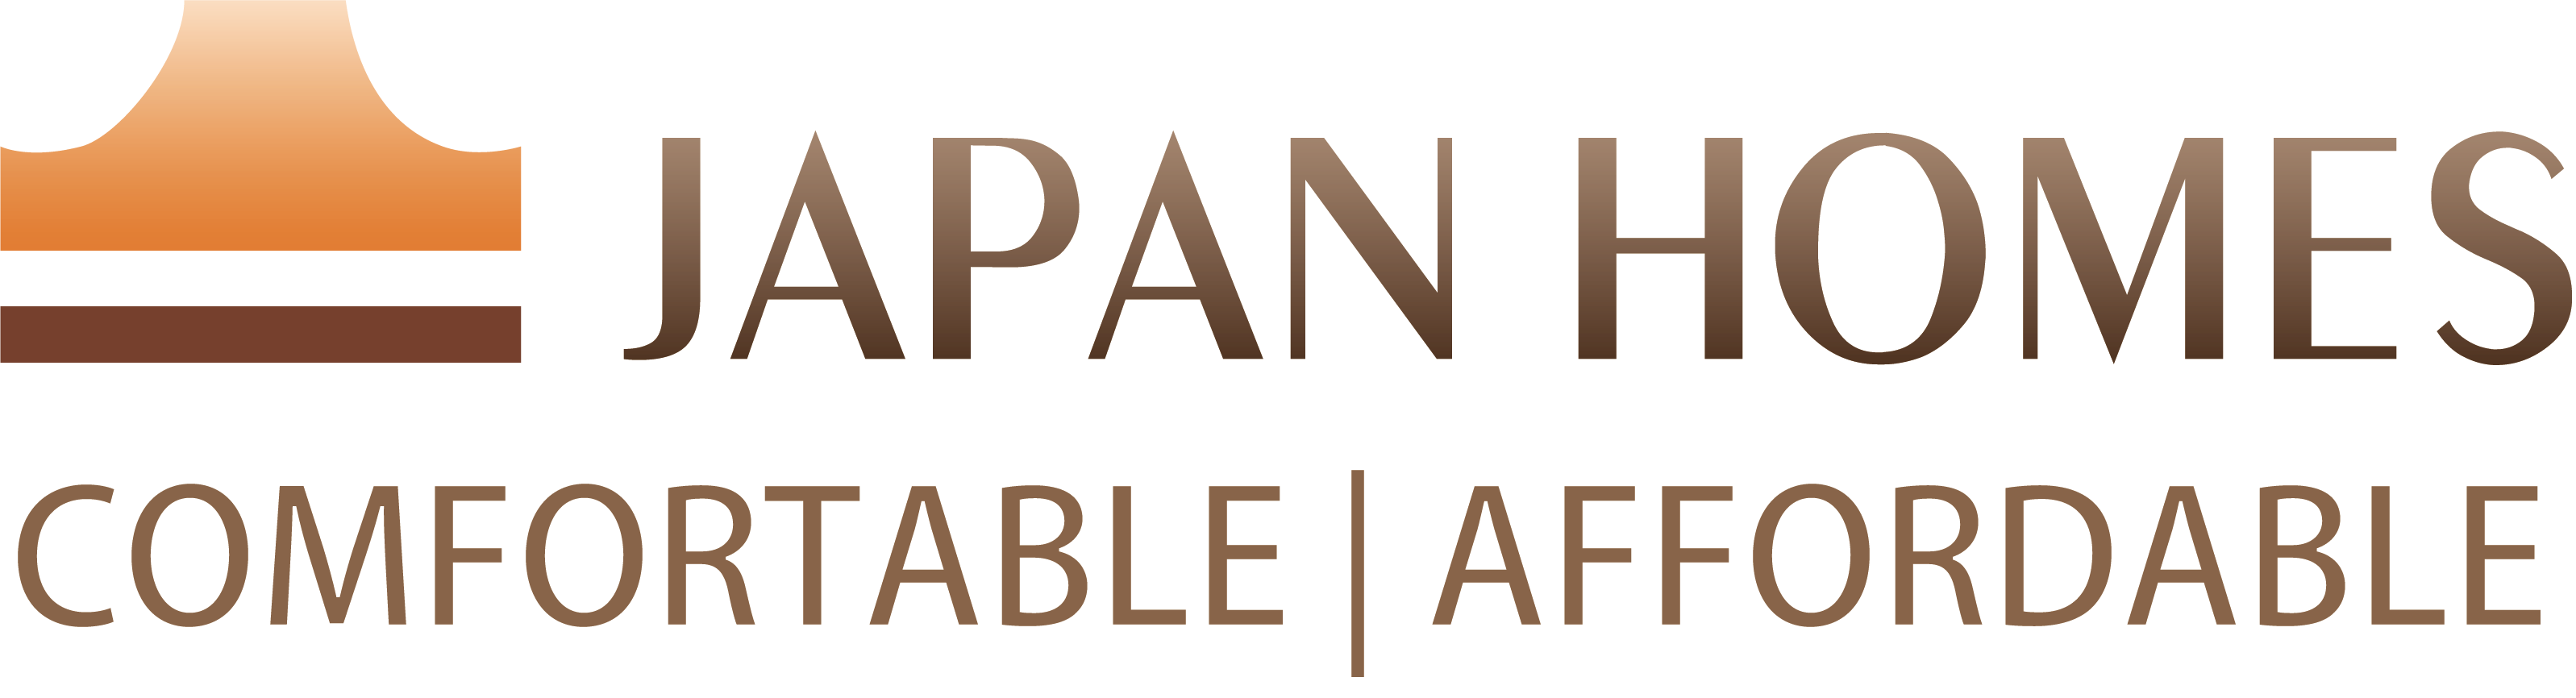 Japan Homes | Comfortable and Affordable